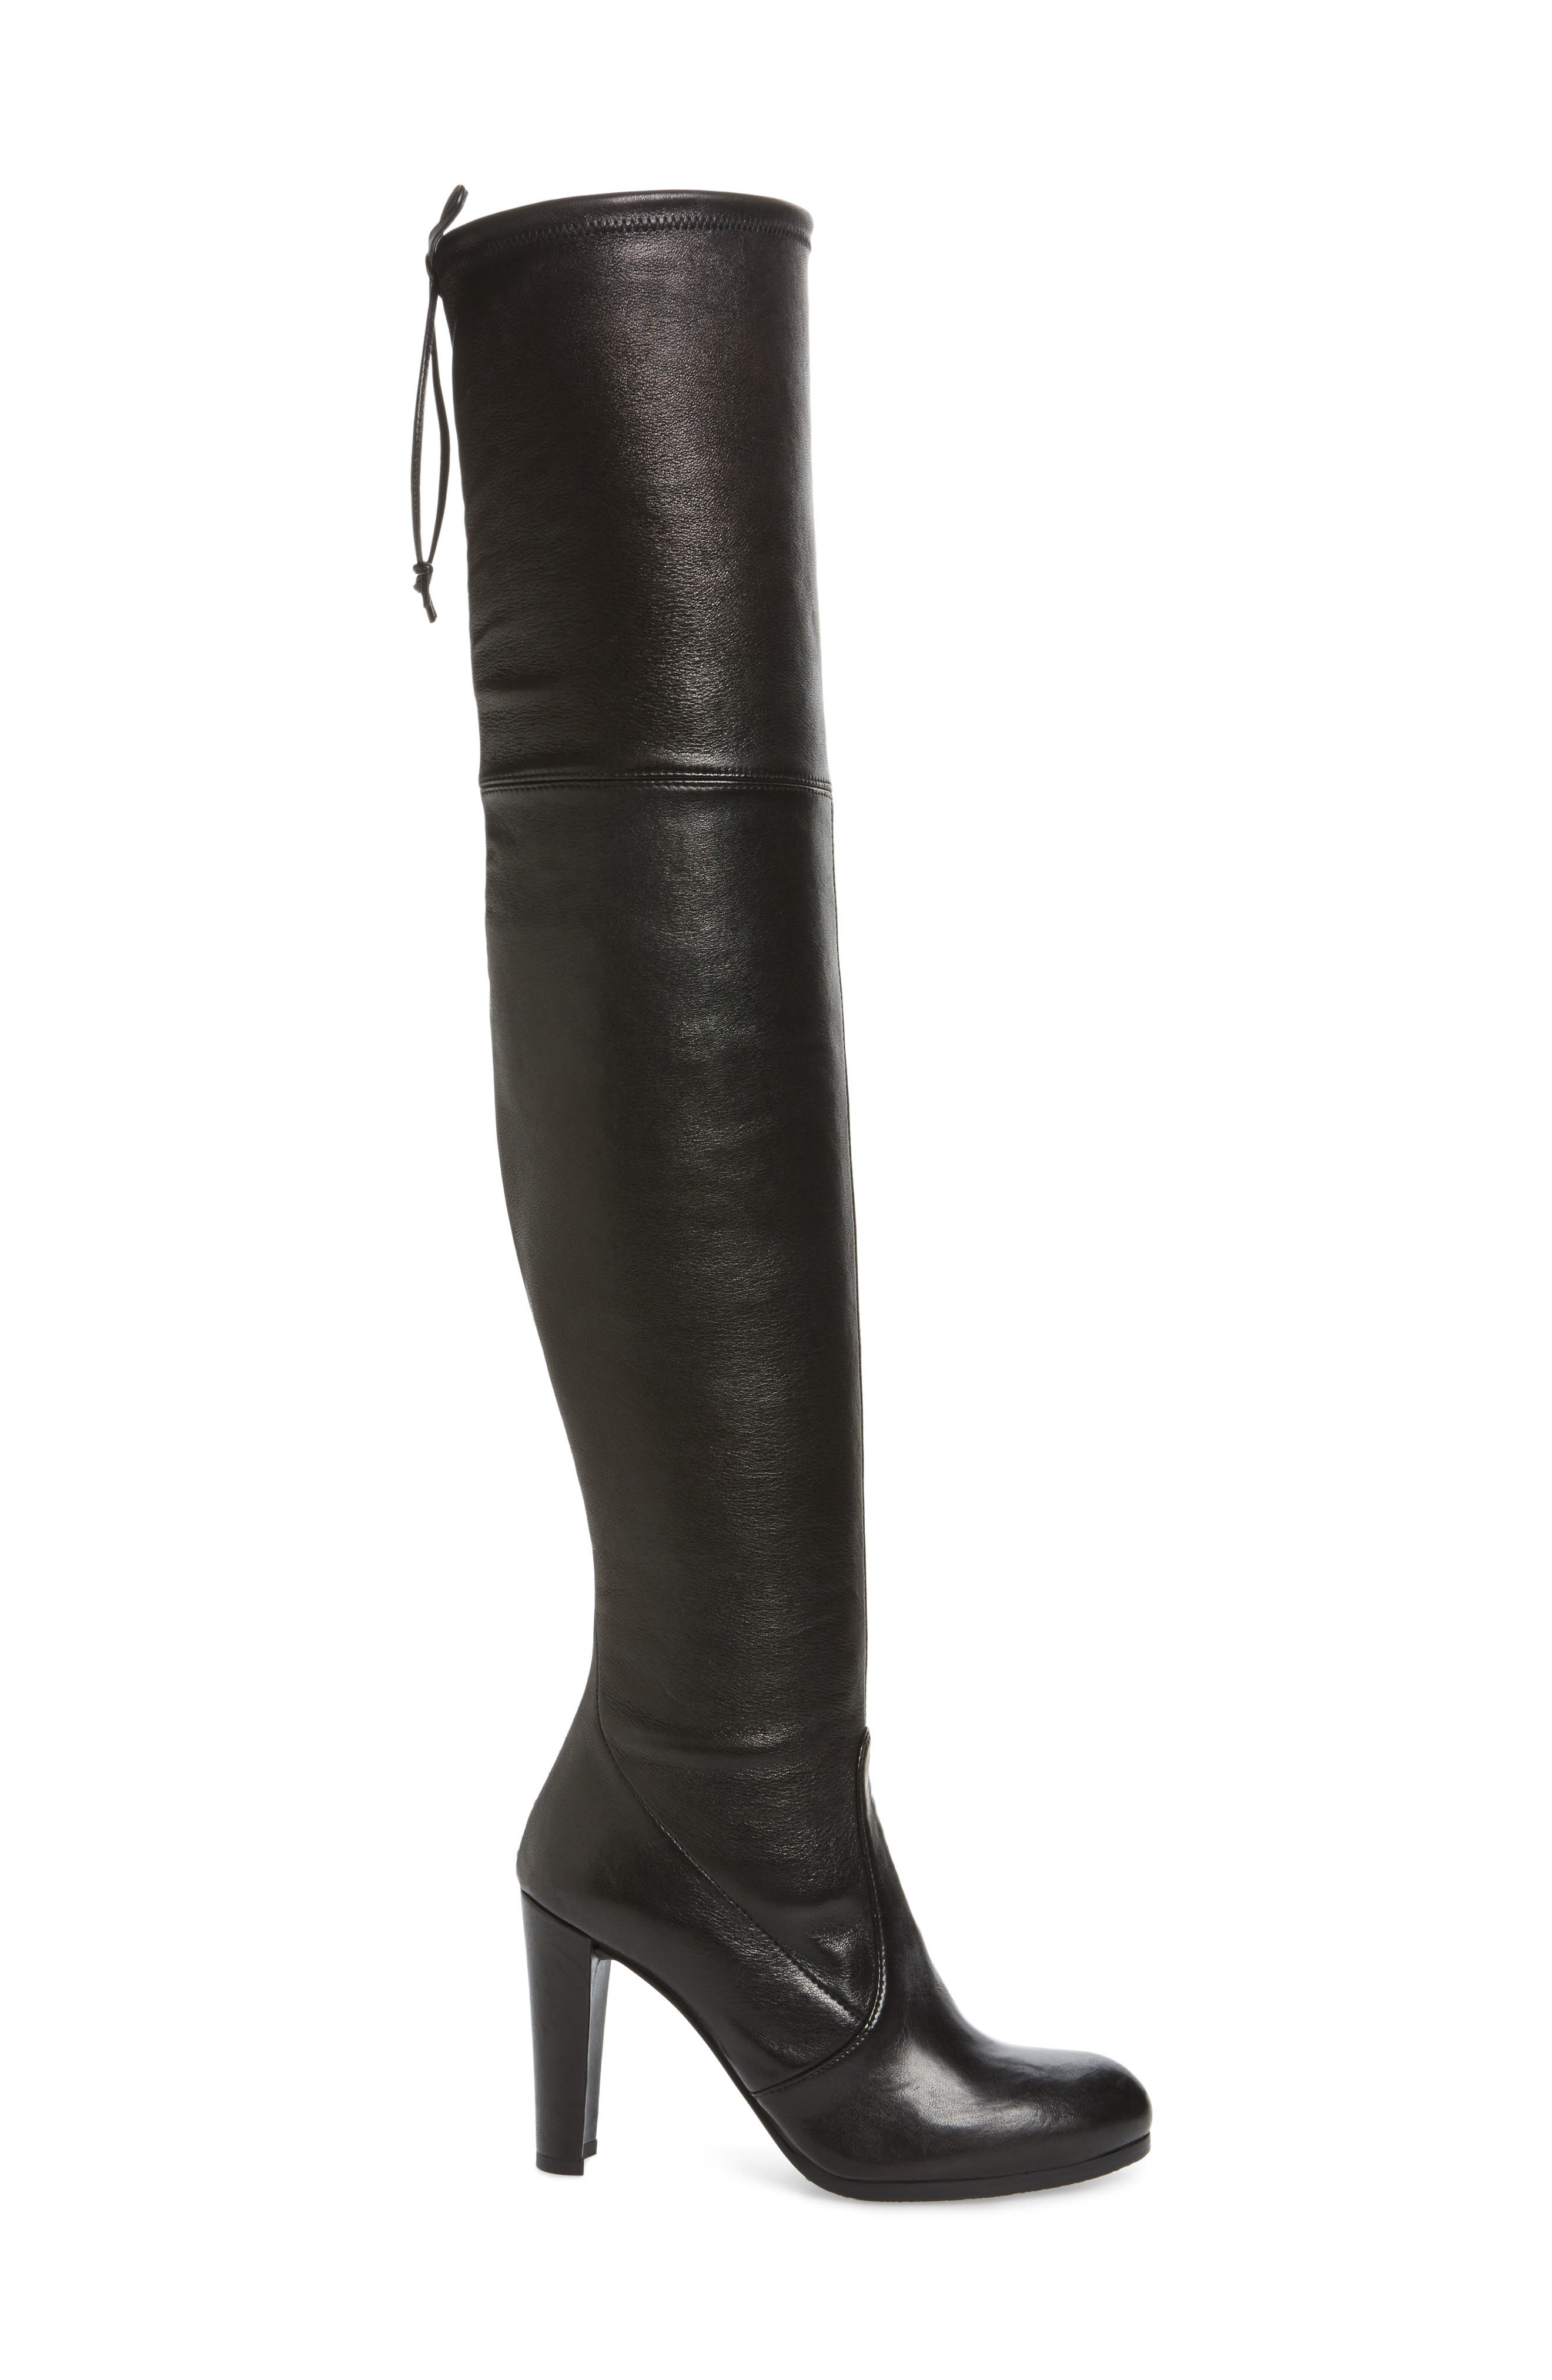 Hiline Over the Knee Boot,                             Alternate thumbnail 3, color,                             Black Nappa